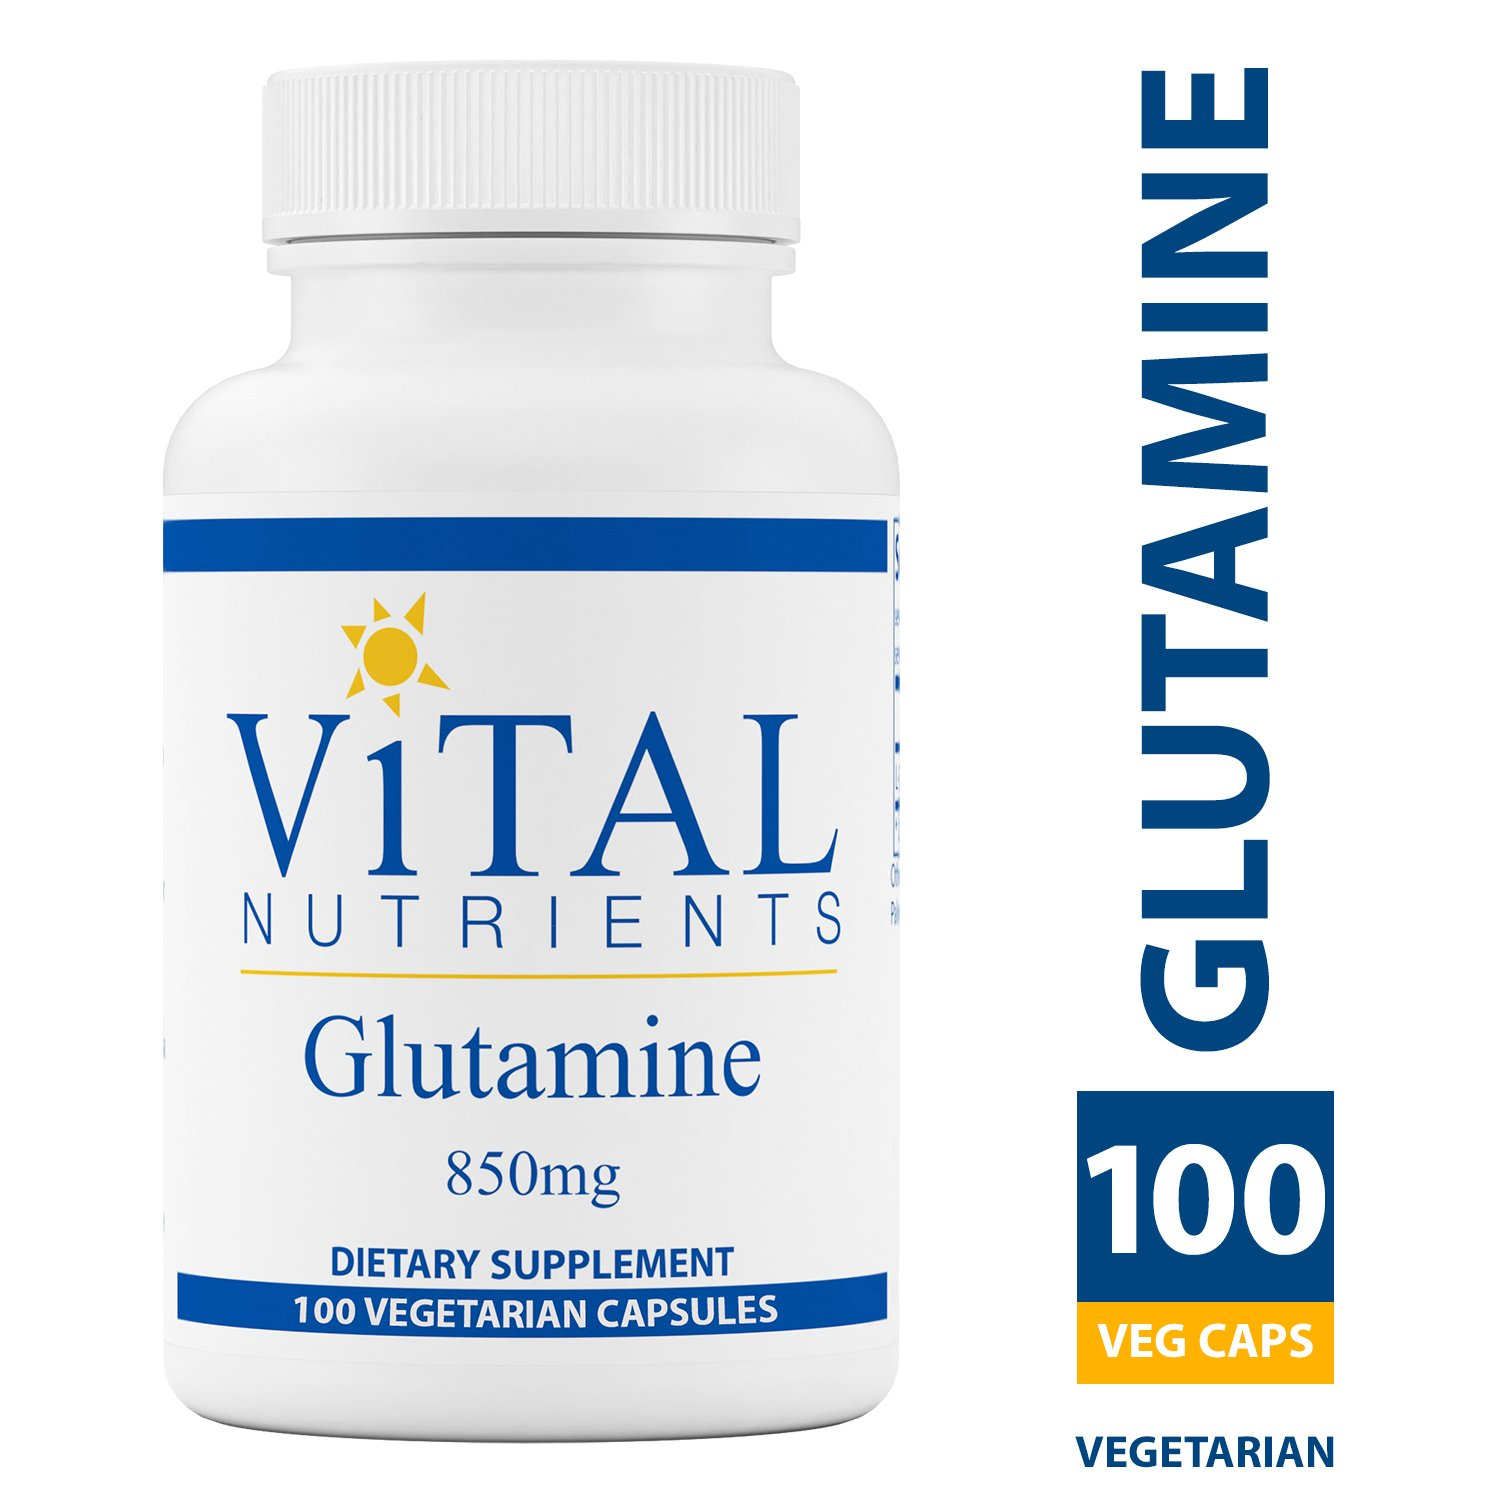 Vital Nutrients - Glutamine 850 mg - Gastrointestinal and Immune Support - 100 Vegetarian Capsules per Bottle